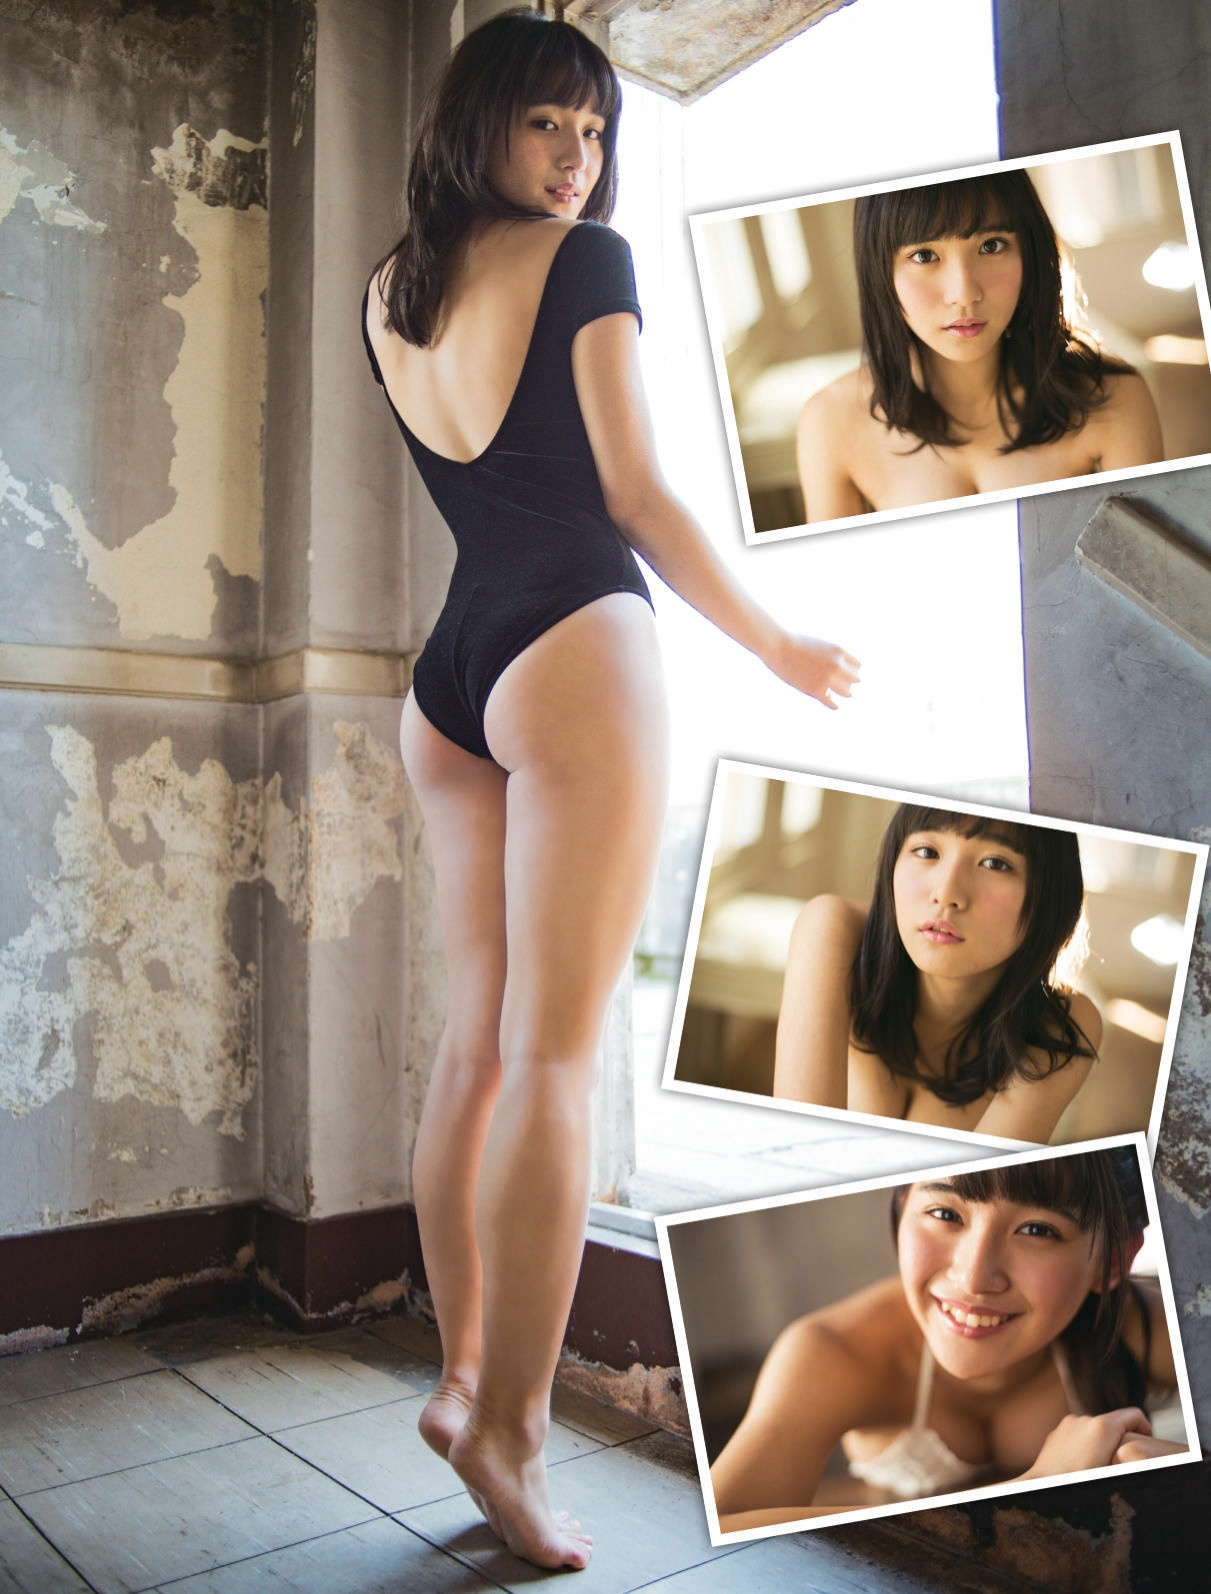 Asakawa Nana 浅川梨奈 SUPER☆GiRLS, Weekly SPA! Magazine 2016.05.17 Gravure